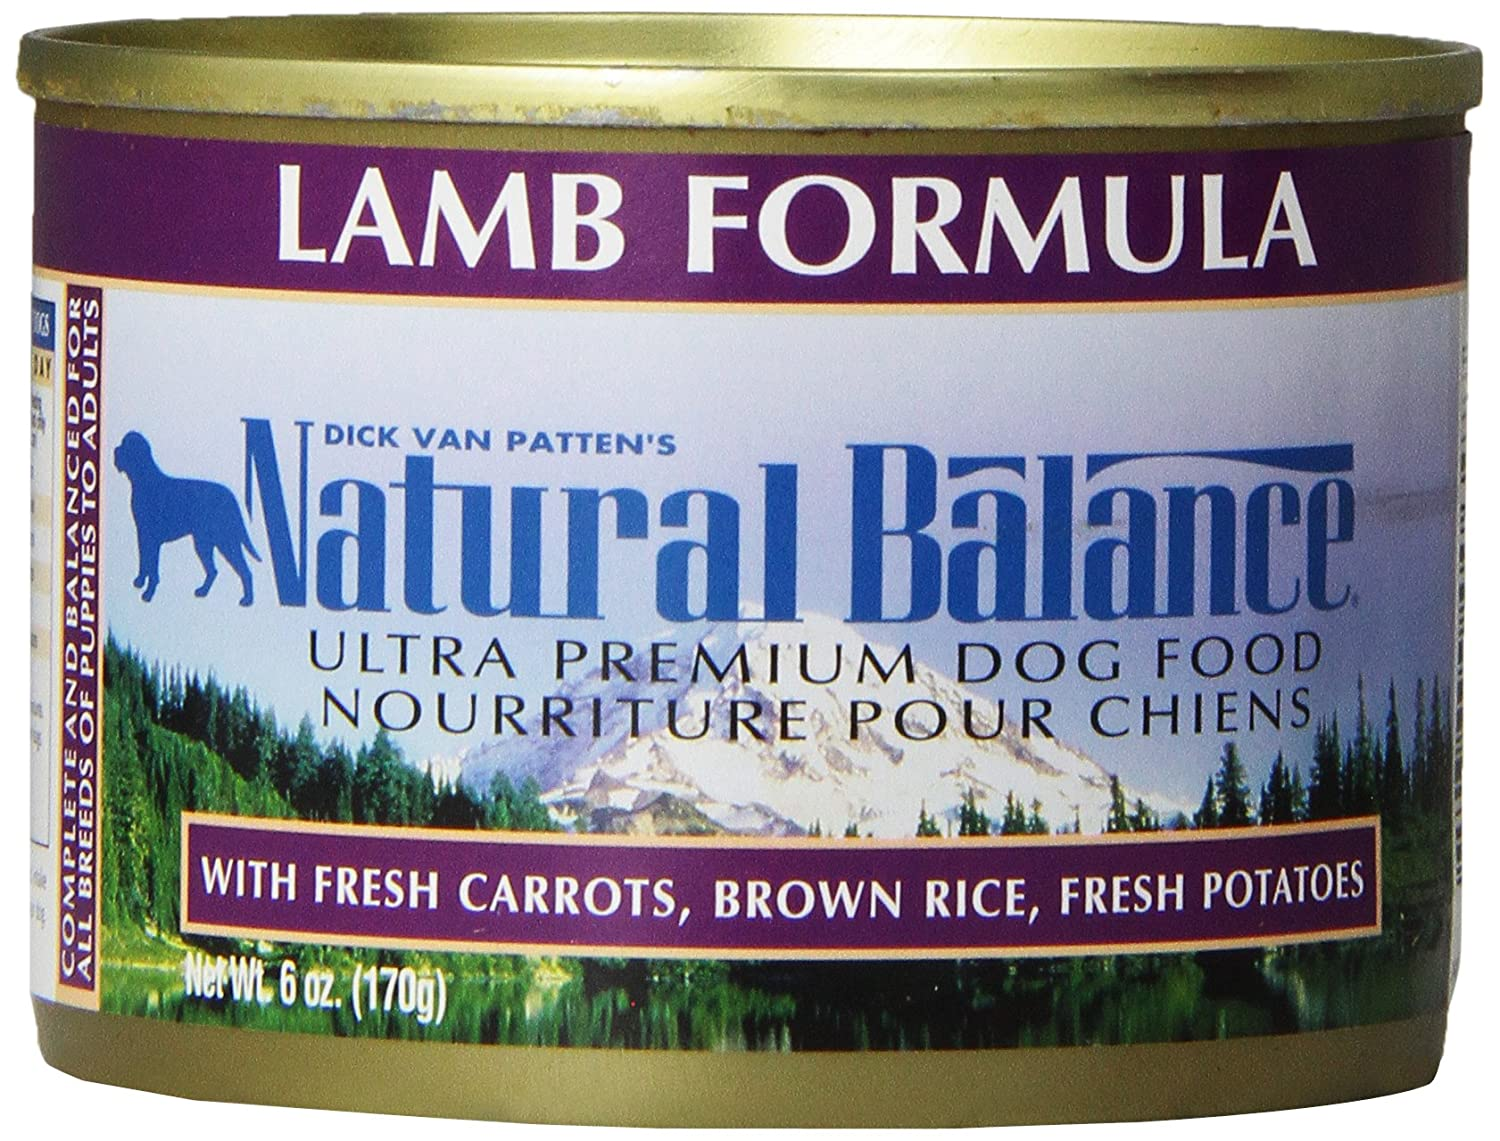 Natural Balance Ultra Premium Lamb Canned Dog Formula, Case of 12 Cans/6 Oz